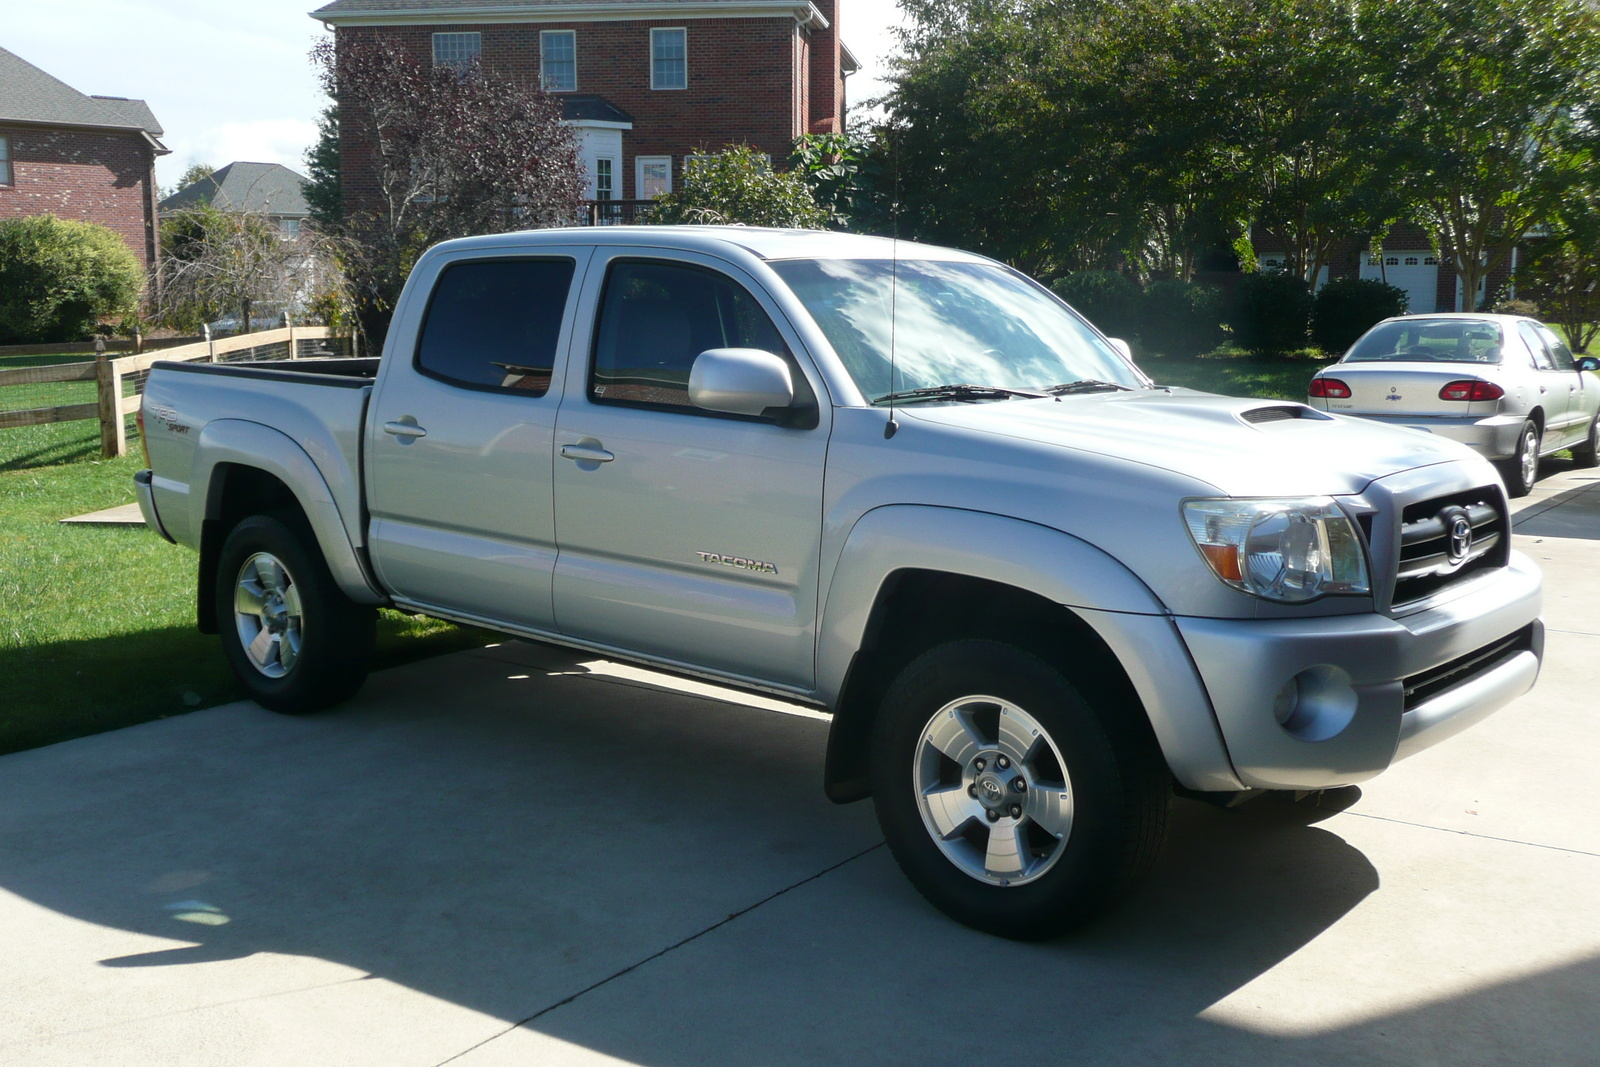 2014 tacoma 4x4 towing capacity autos post. Black Bedroom Furniture Sets. Home Design Ideas